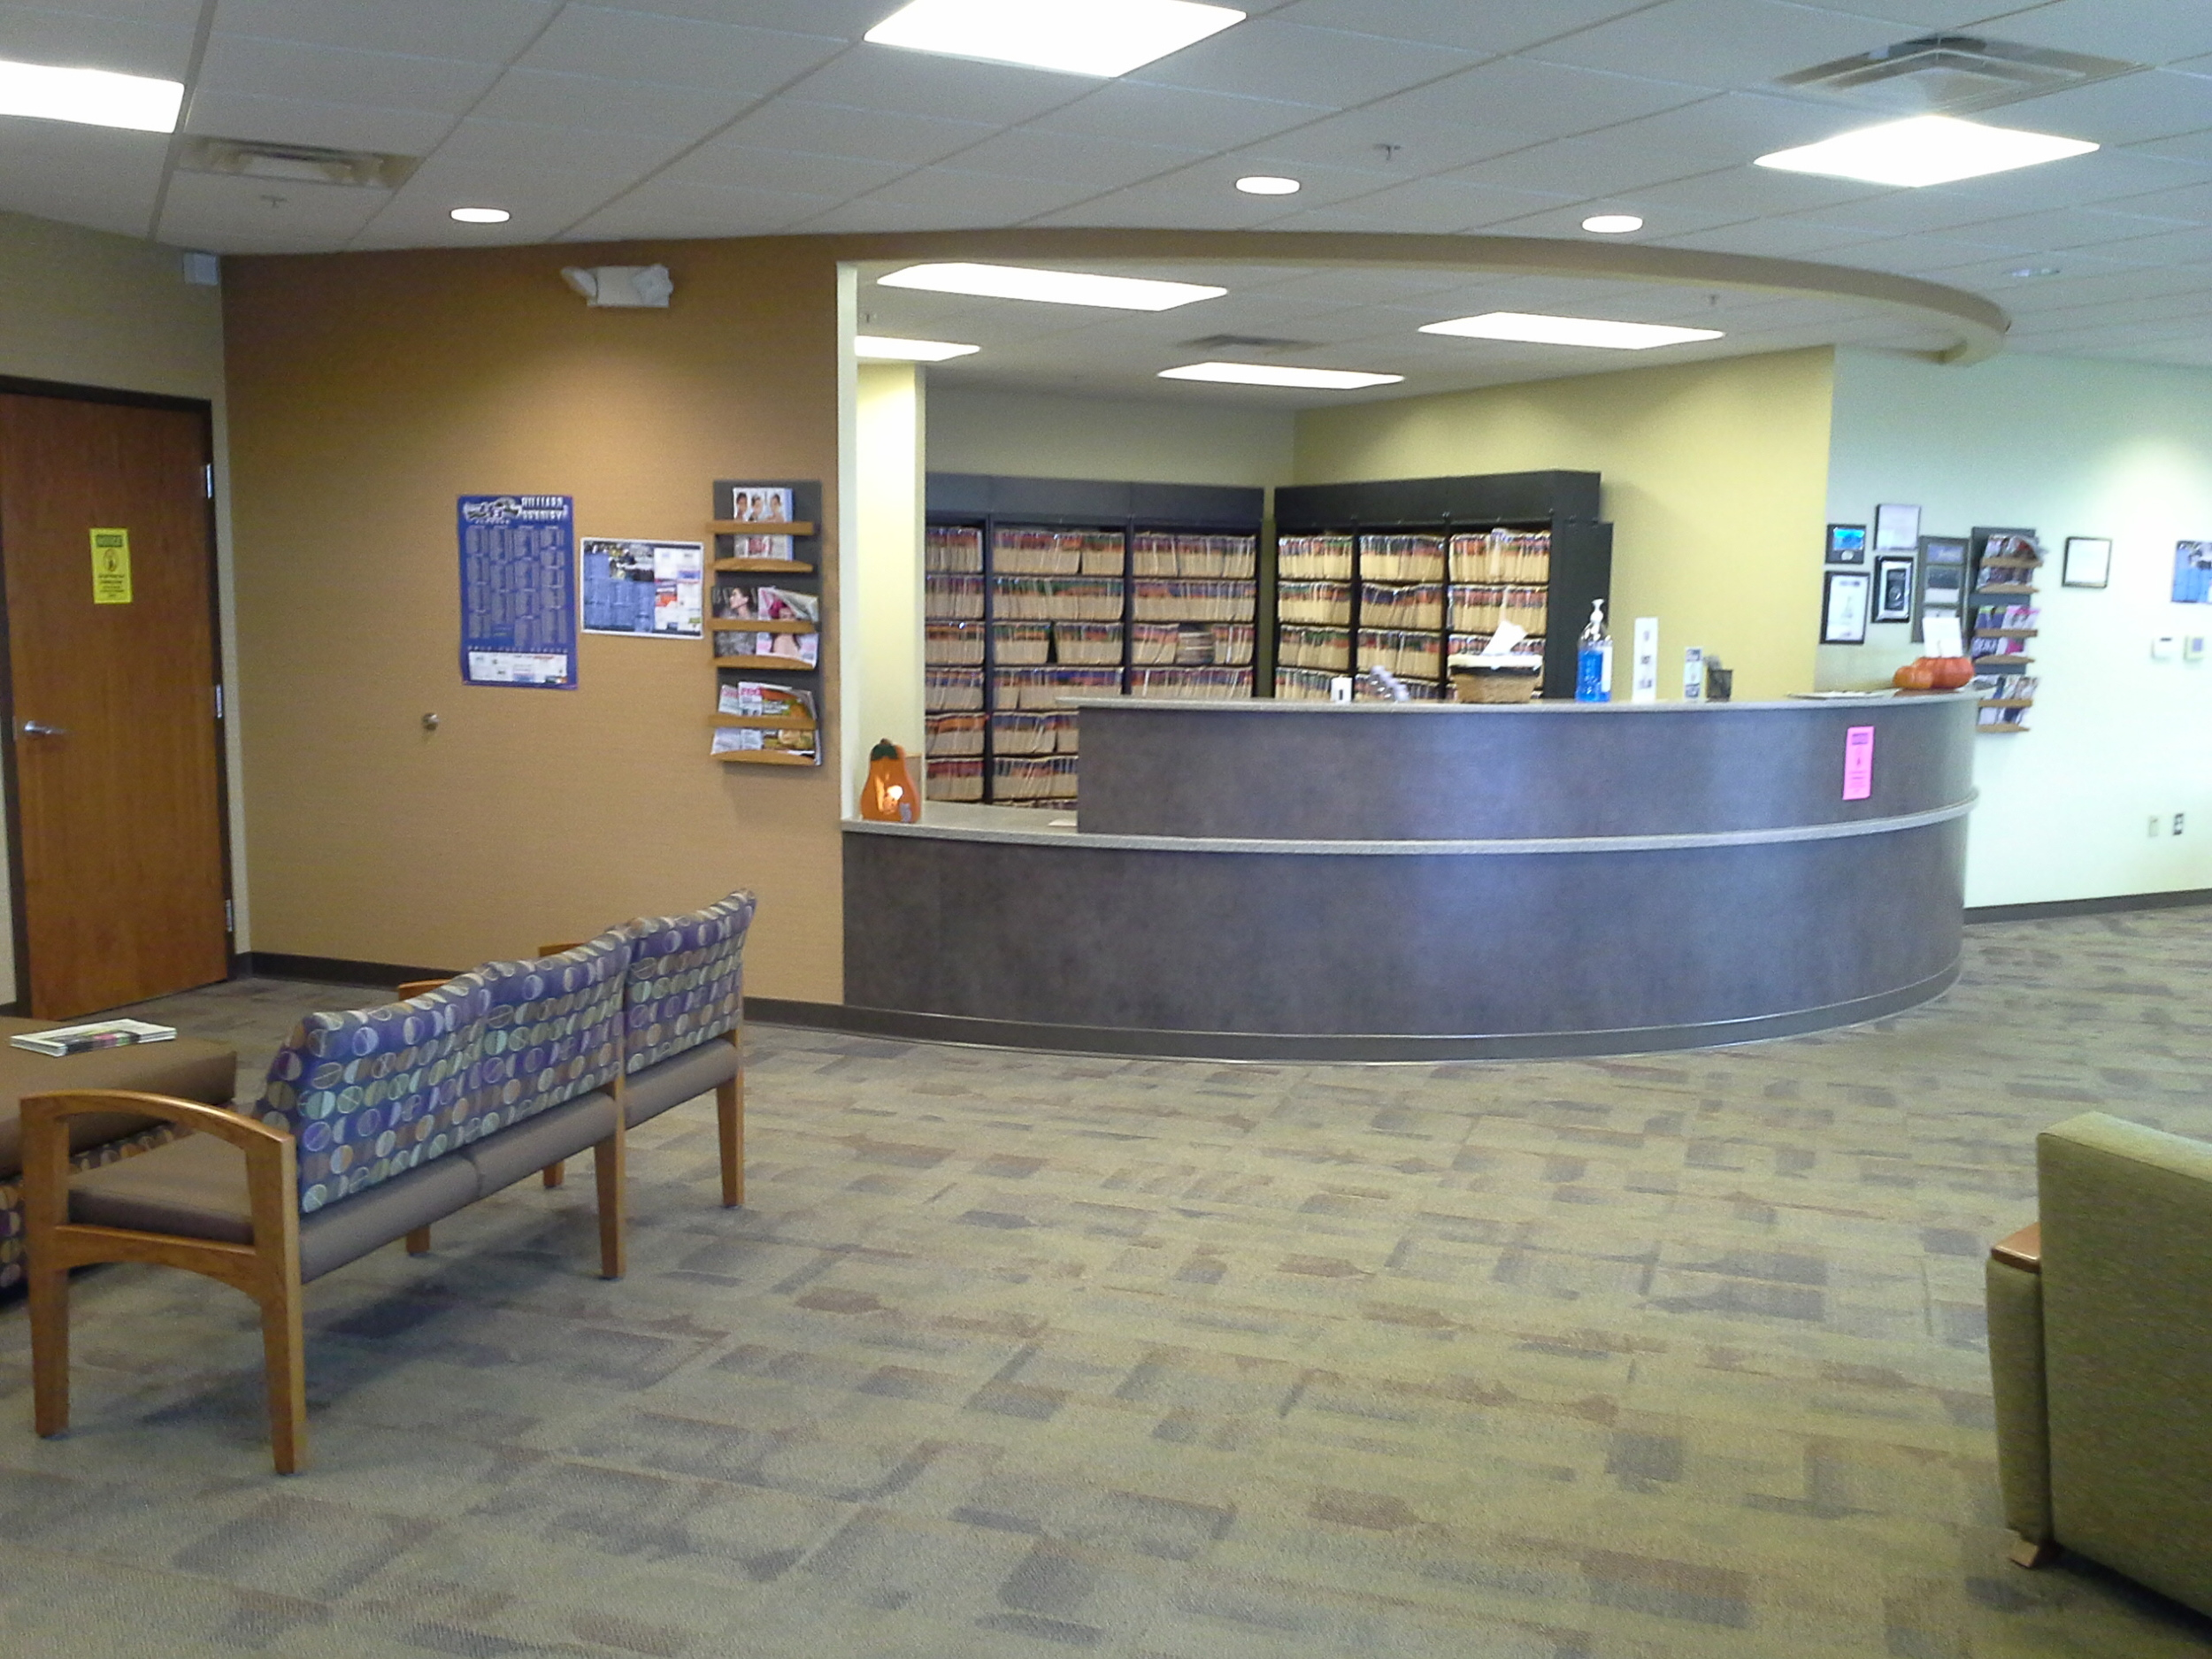 ExpressMed Hilliard waiting area and reception